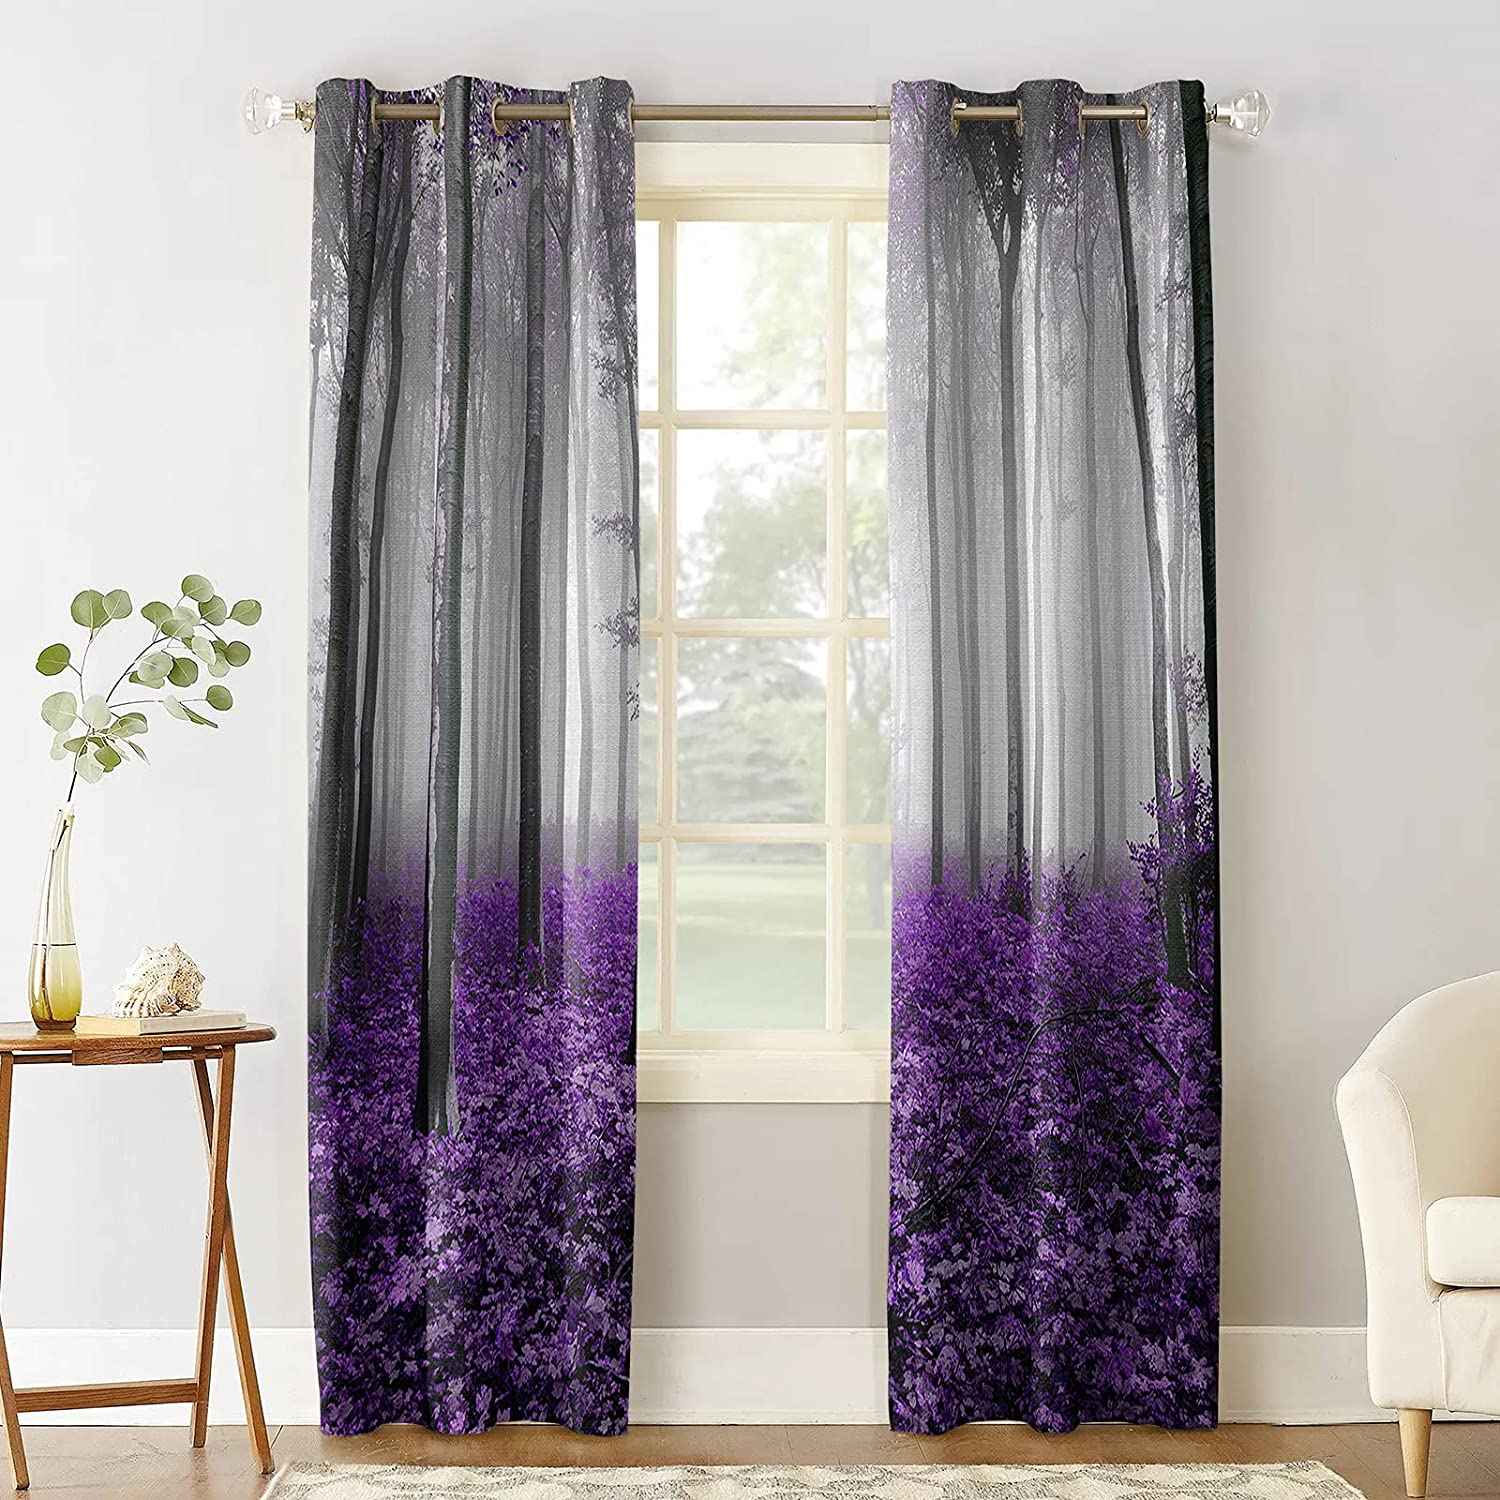 Blackout Curtains for Bedroom Room Inexpensive Darkening Ranking TOP11 Thermal Ins Grommet